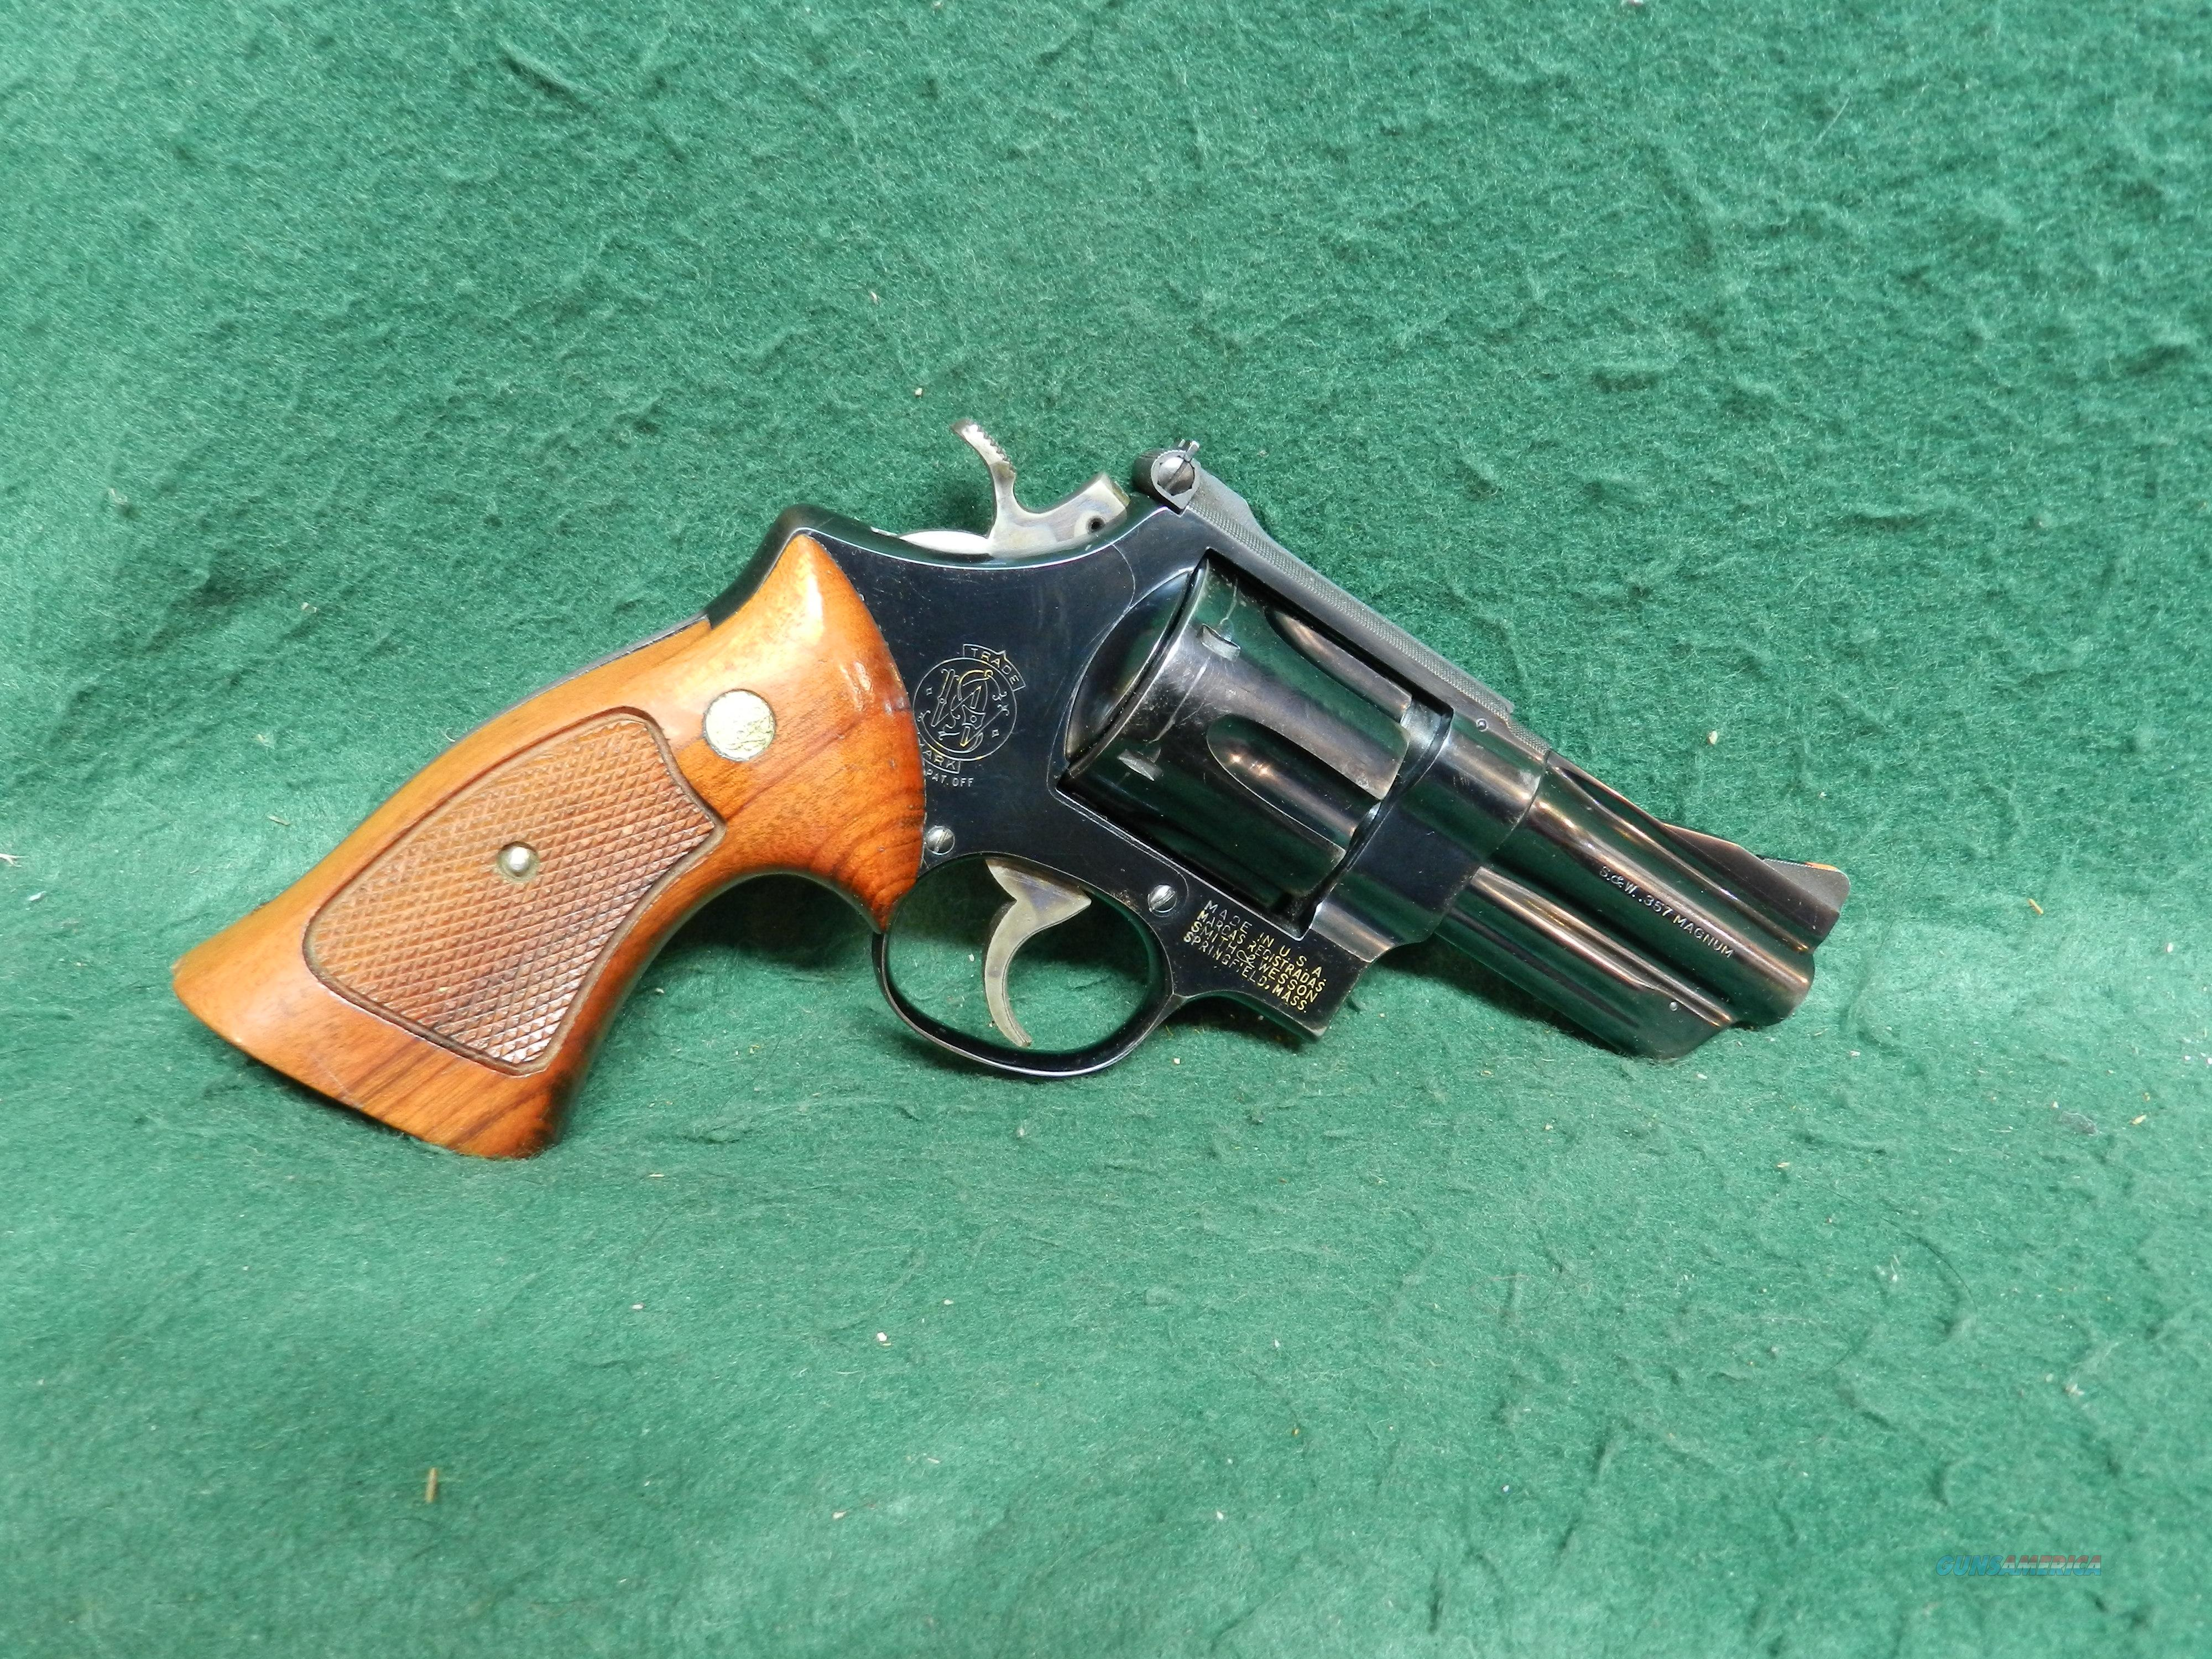 "Smith & Wesson Model 27-2 357 Magnum 3 1/2"" Barrel  Guns > Pistols > Smith & Wesson Revolvers > Full Frame Revolver"